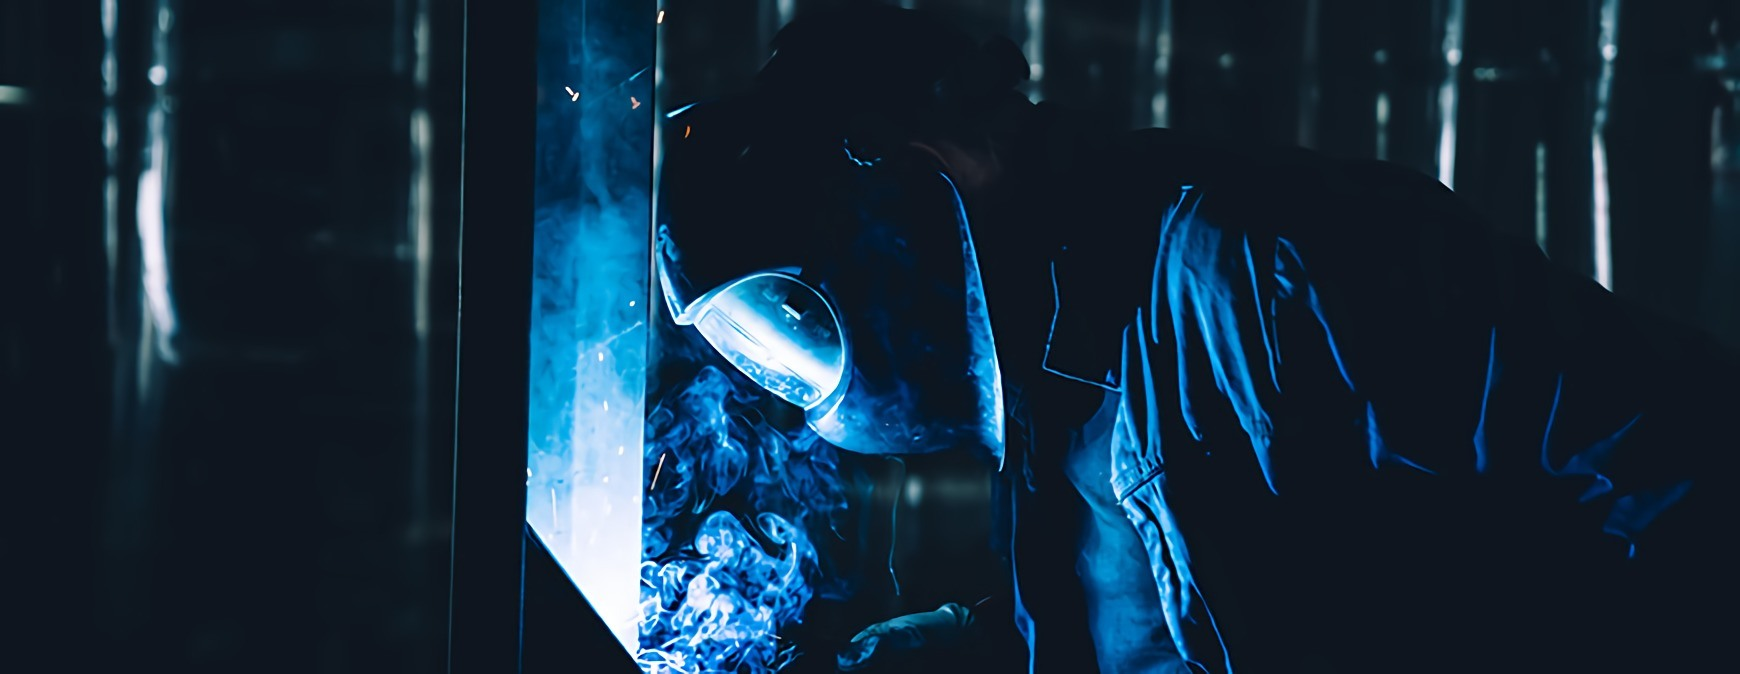 welding in the dark